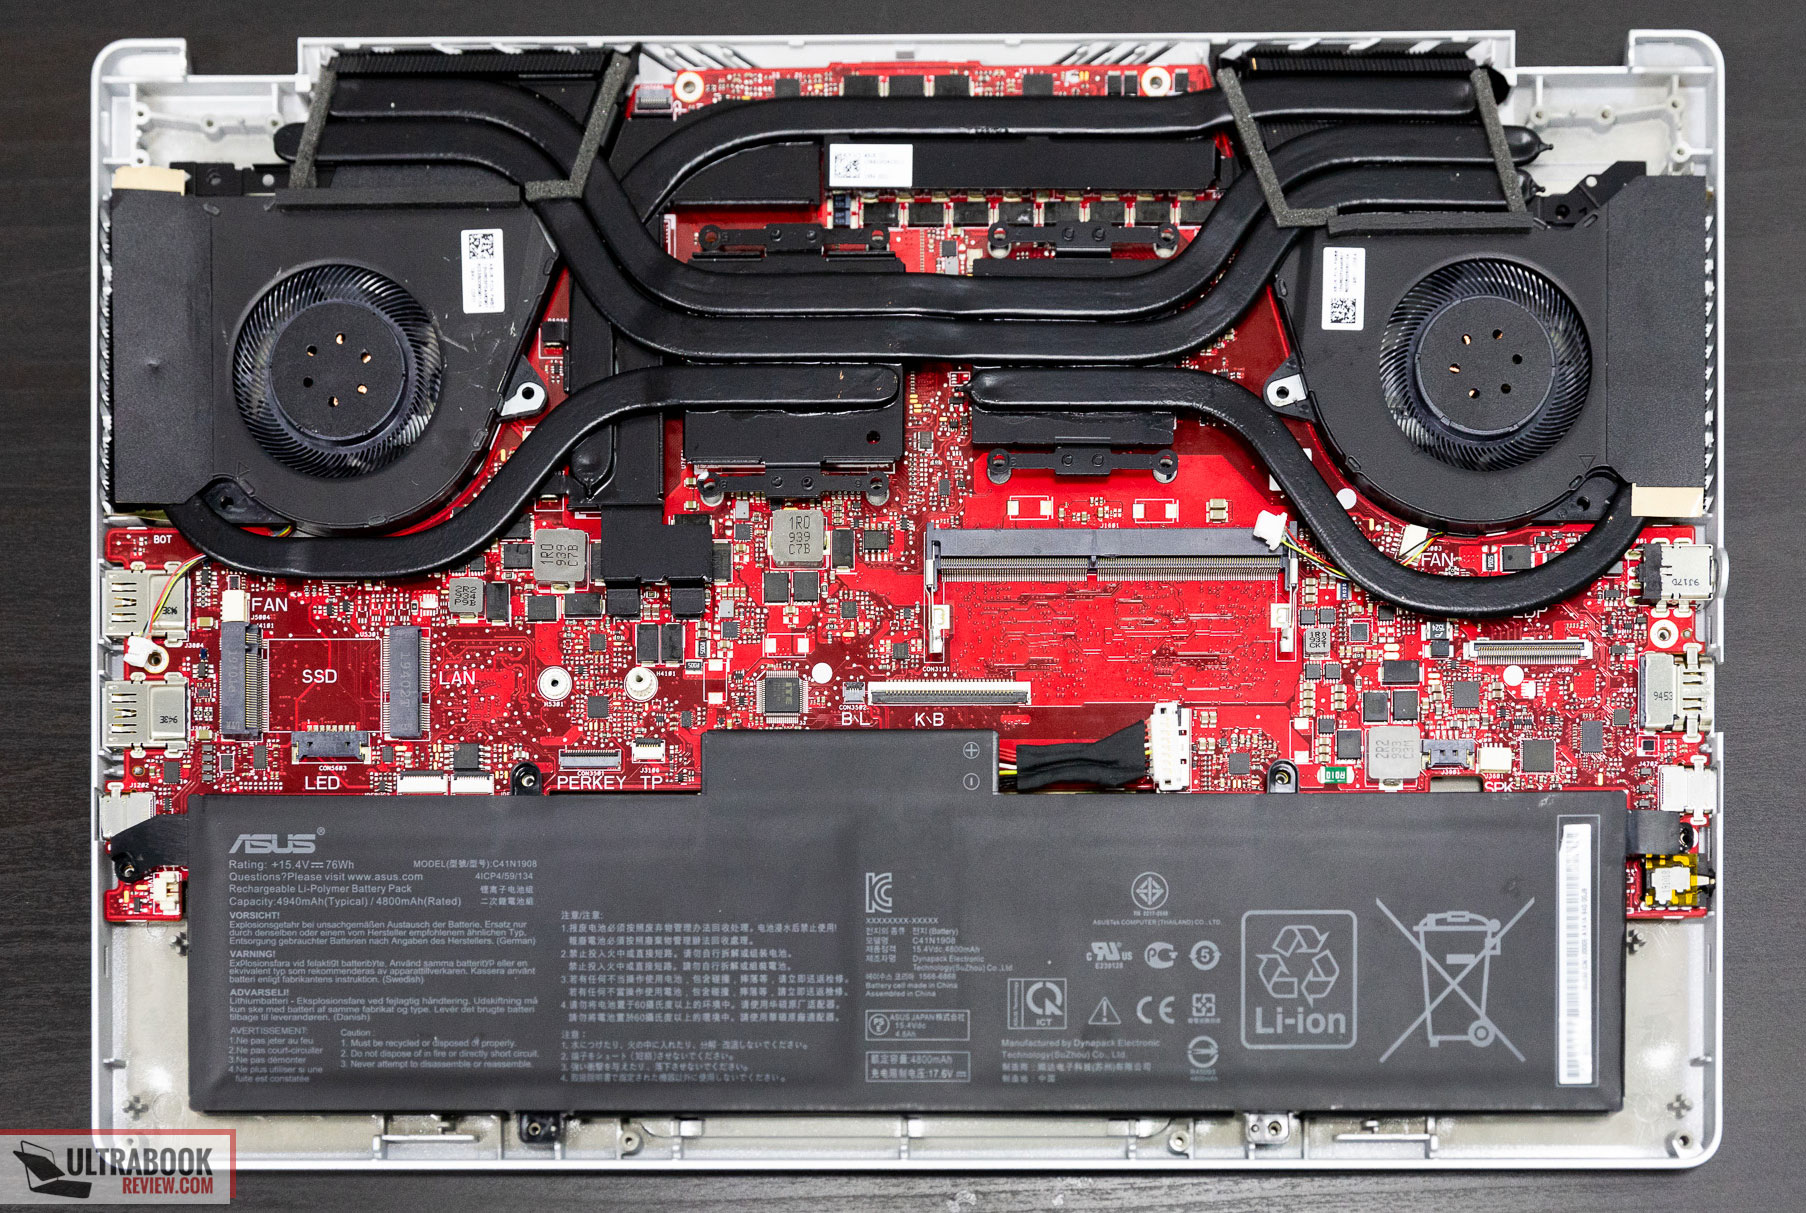 Asus Zephyrus G14 internals and dissasembly